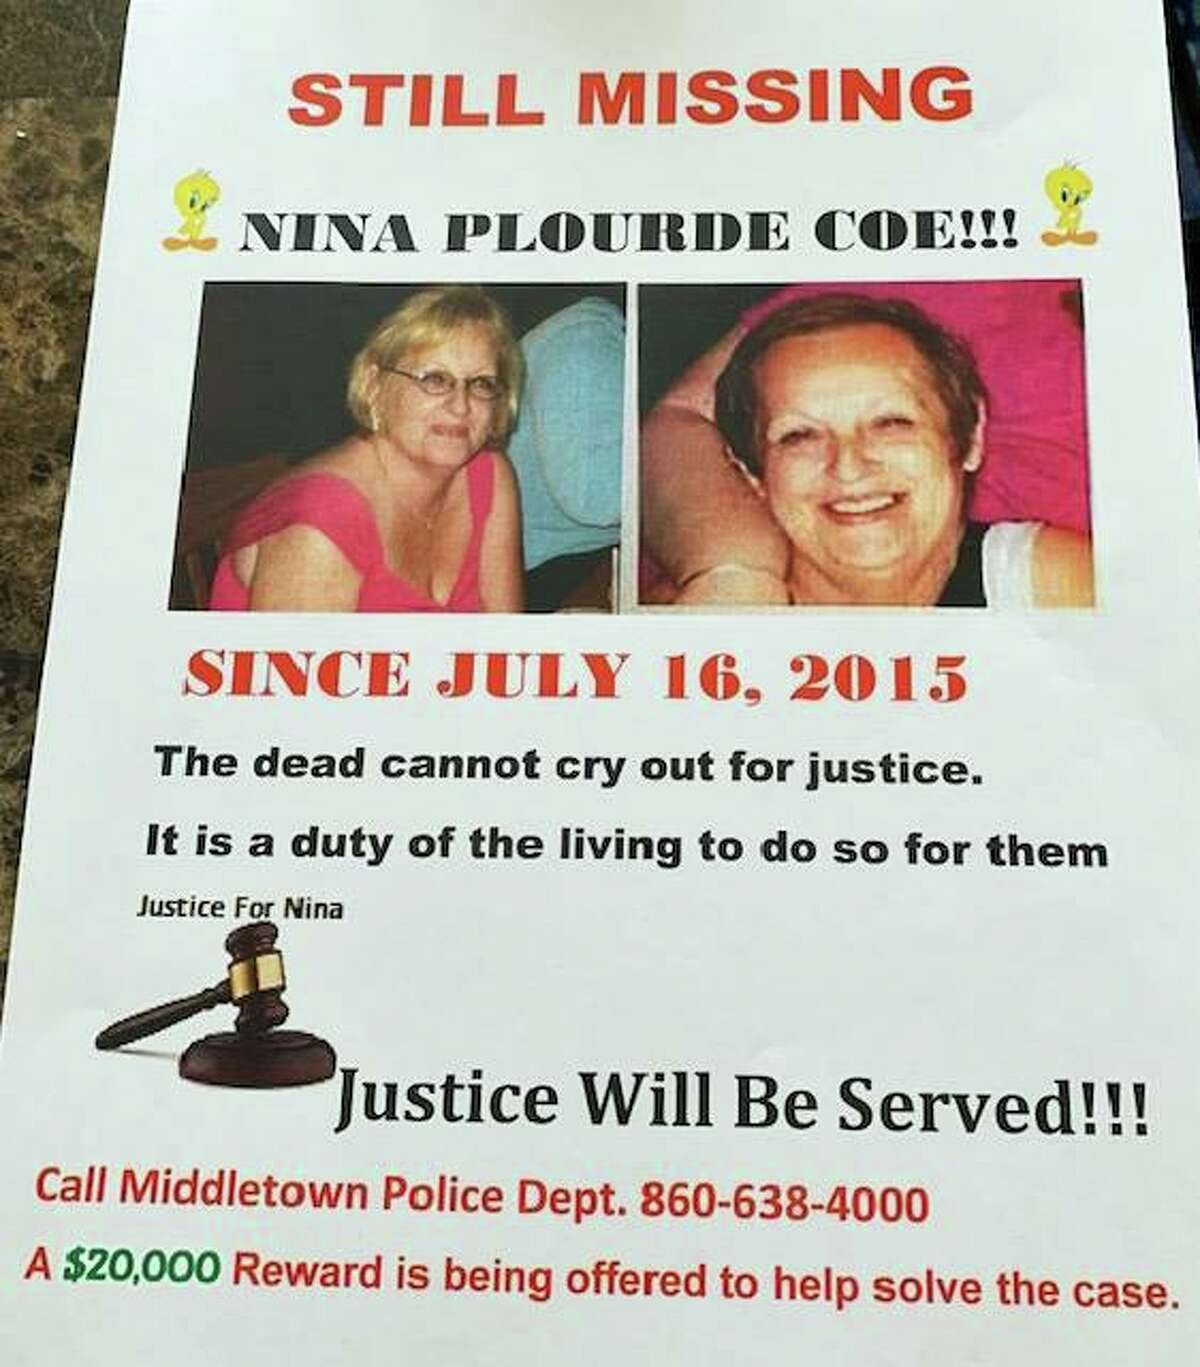 Nina Coe of Middletown went missing July 16, 2015, at age 56.